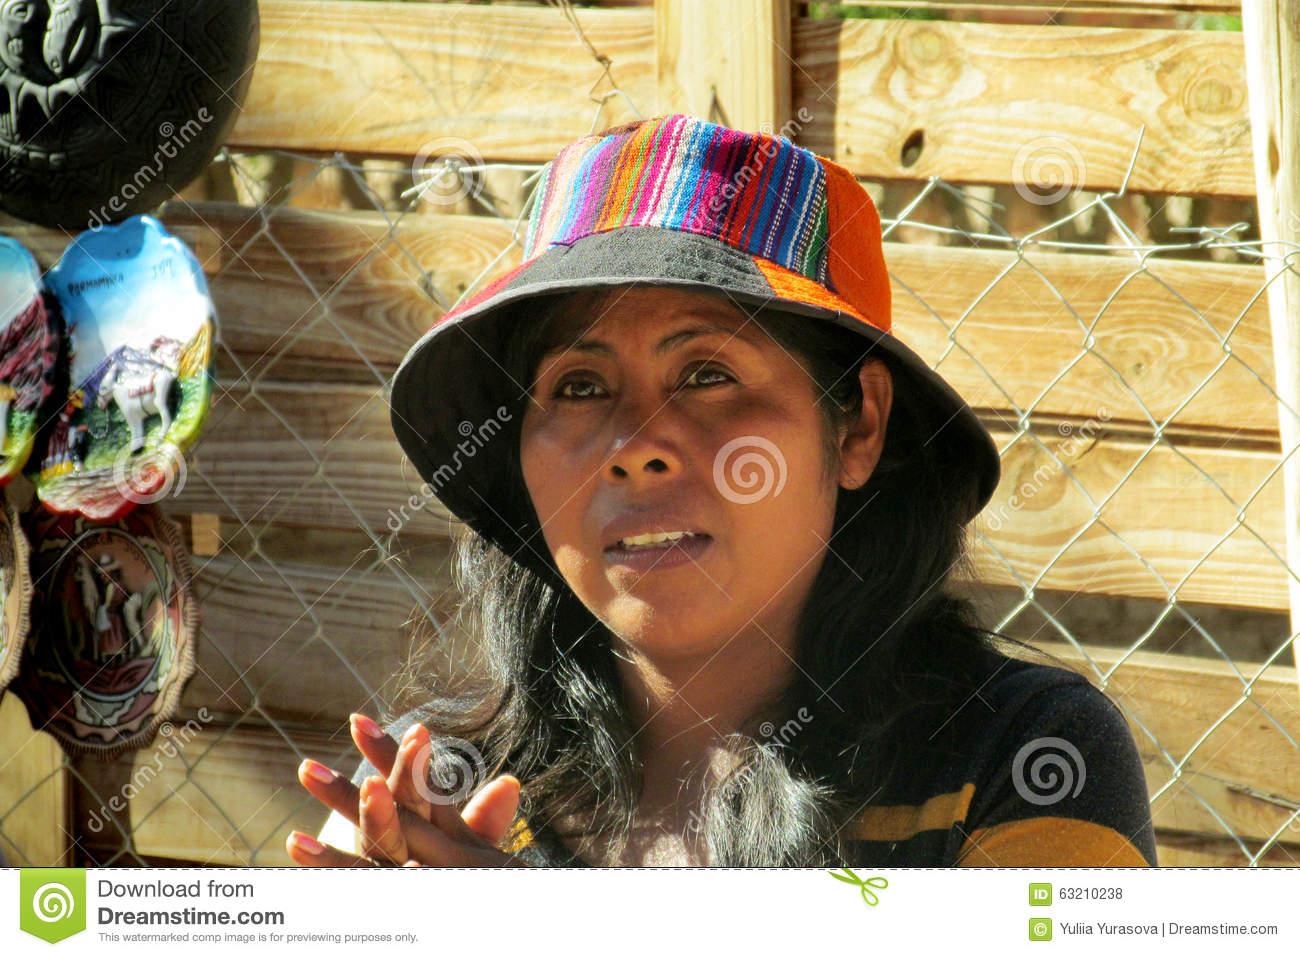 hispanic single women in mountain village Many of the top destinations are in nearby latin america  it has quaint  mountain cities flanked by rainforests and coffee plantations, laid-back  and a  number of villages where natives still practice their ancient mayan traditions   no single expat destination is right for everyone, so a country that draws  thousands of new.